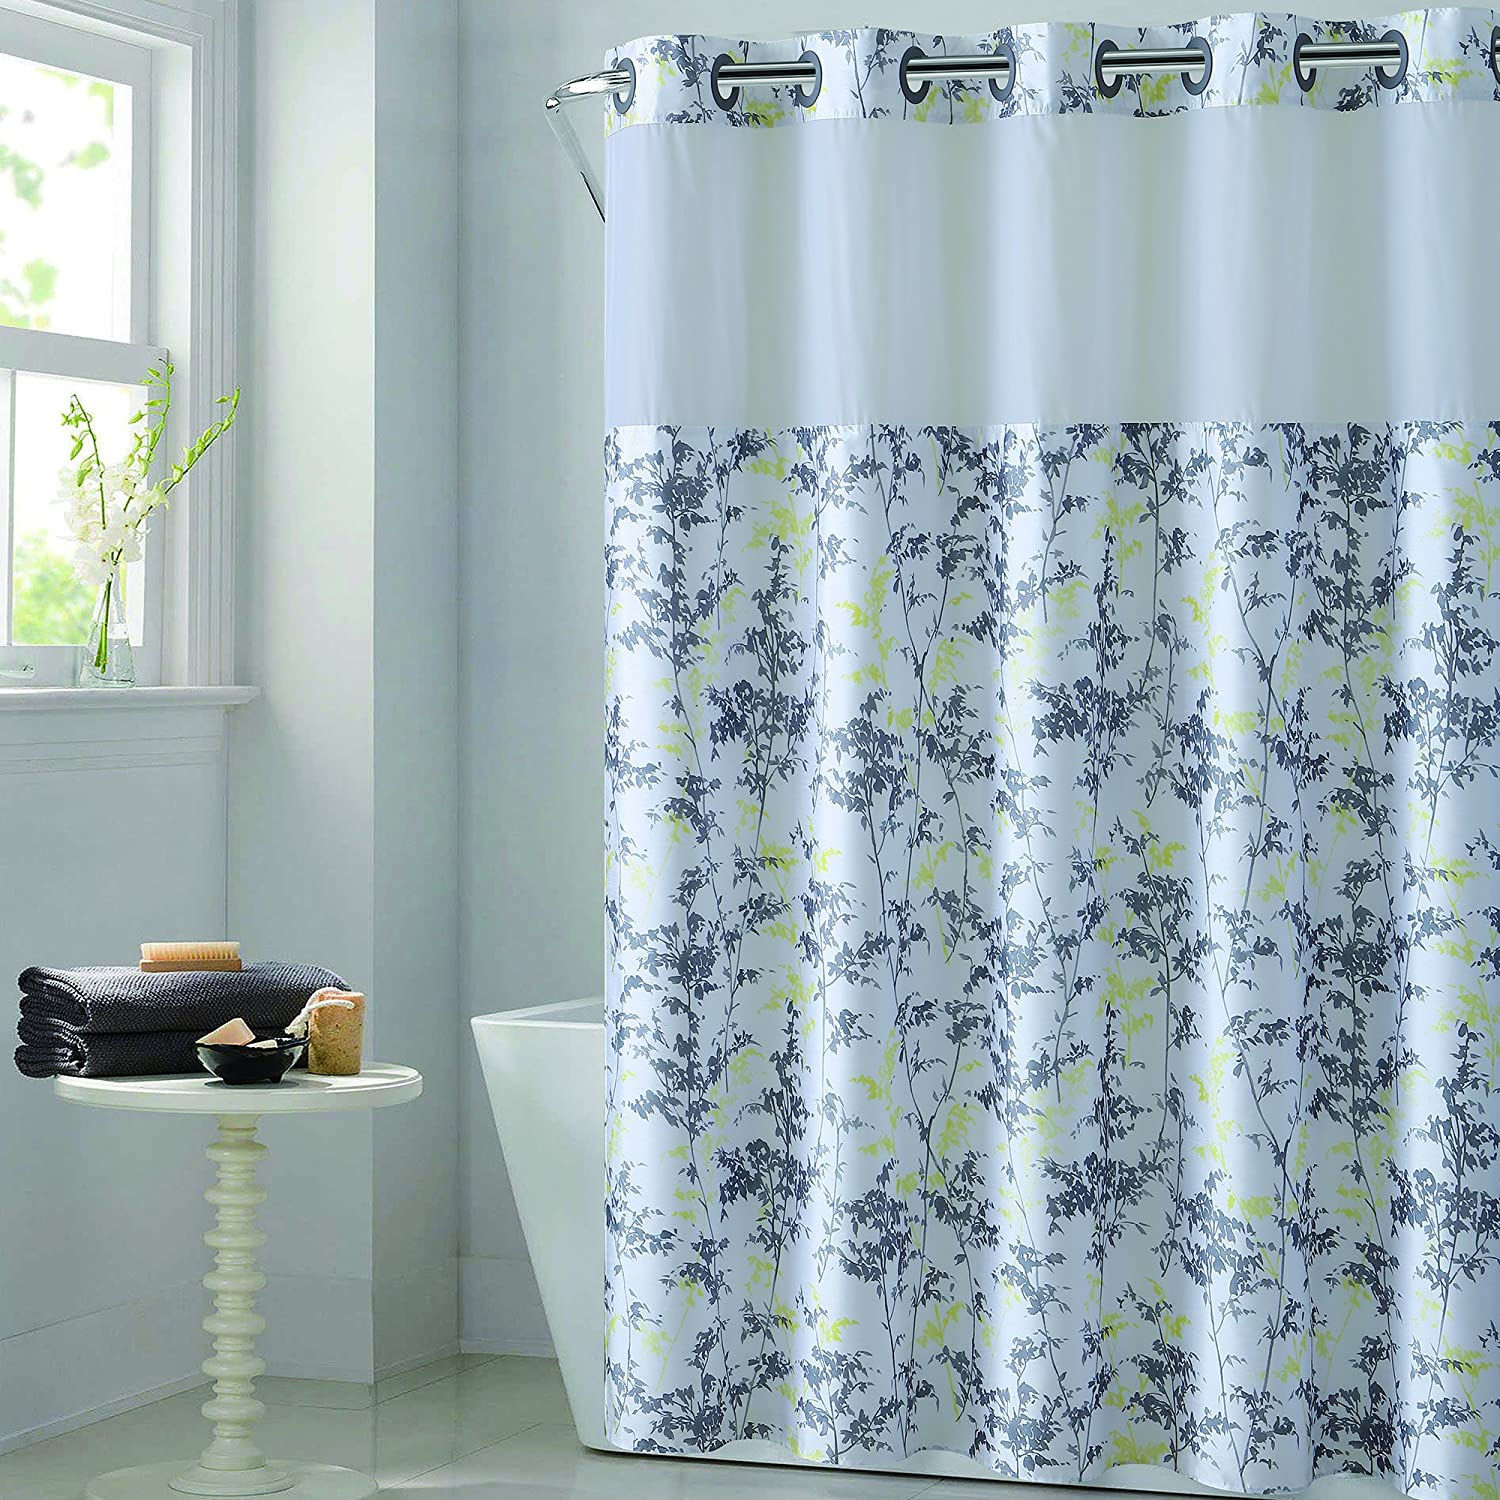 Hookless Floral Leaves PEVA Lined Shower Curtain Gray//Yellow